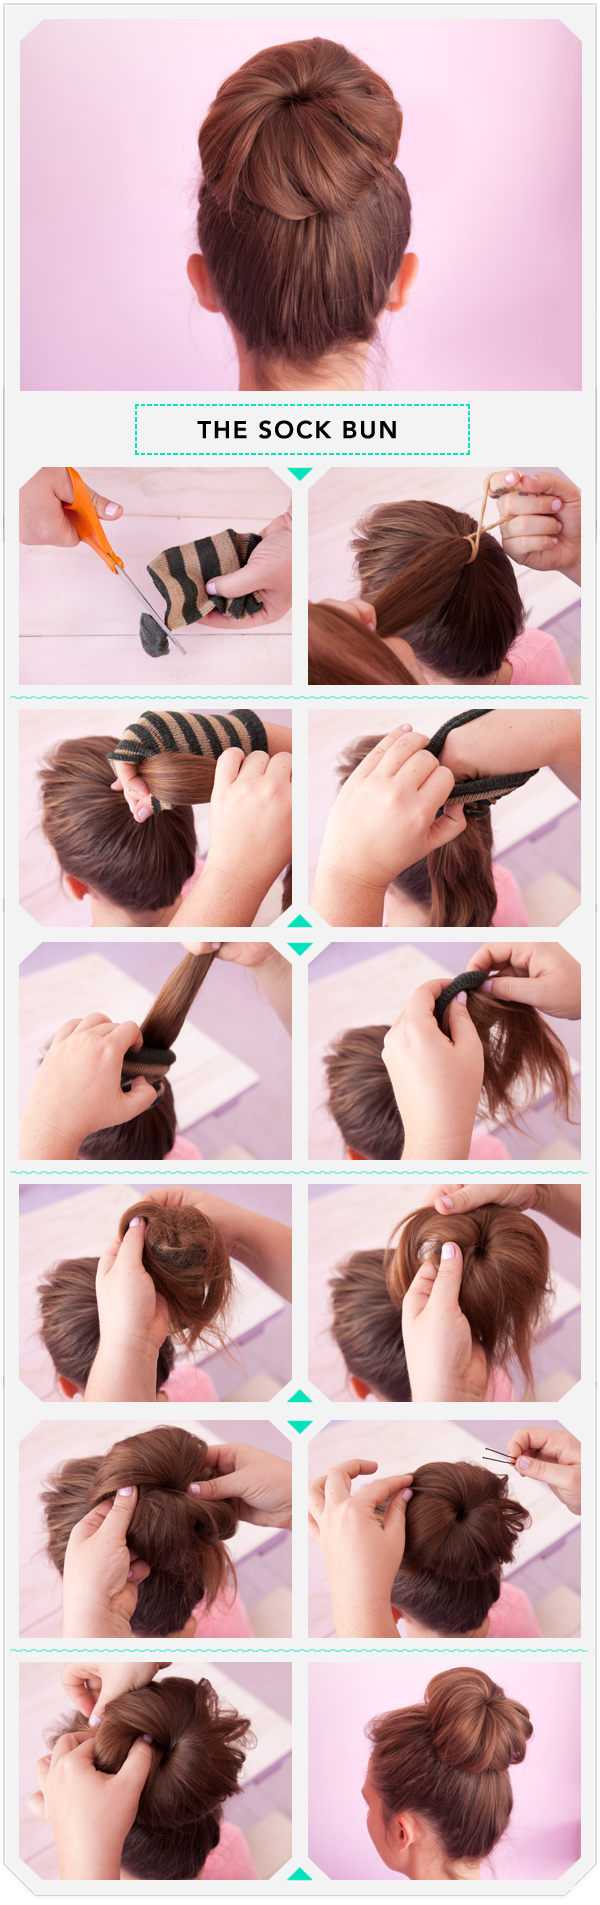 How To: The Sock Bun - Gonna have to try this, looks so easy!